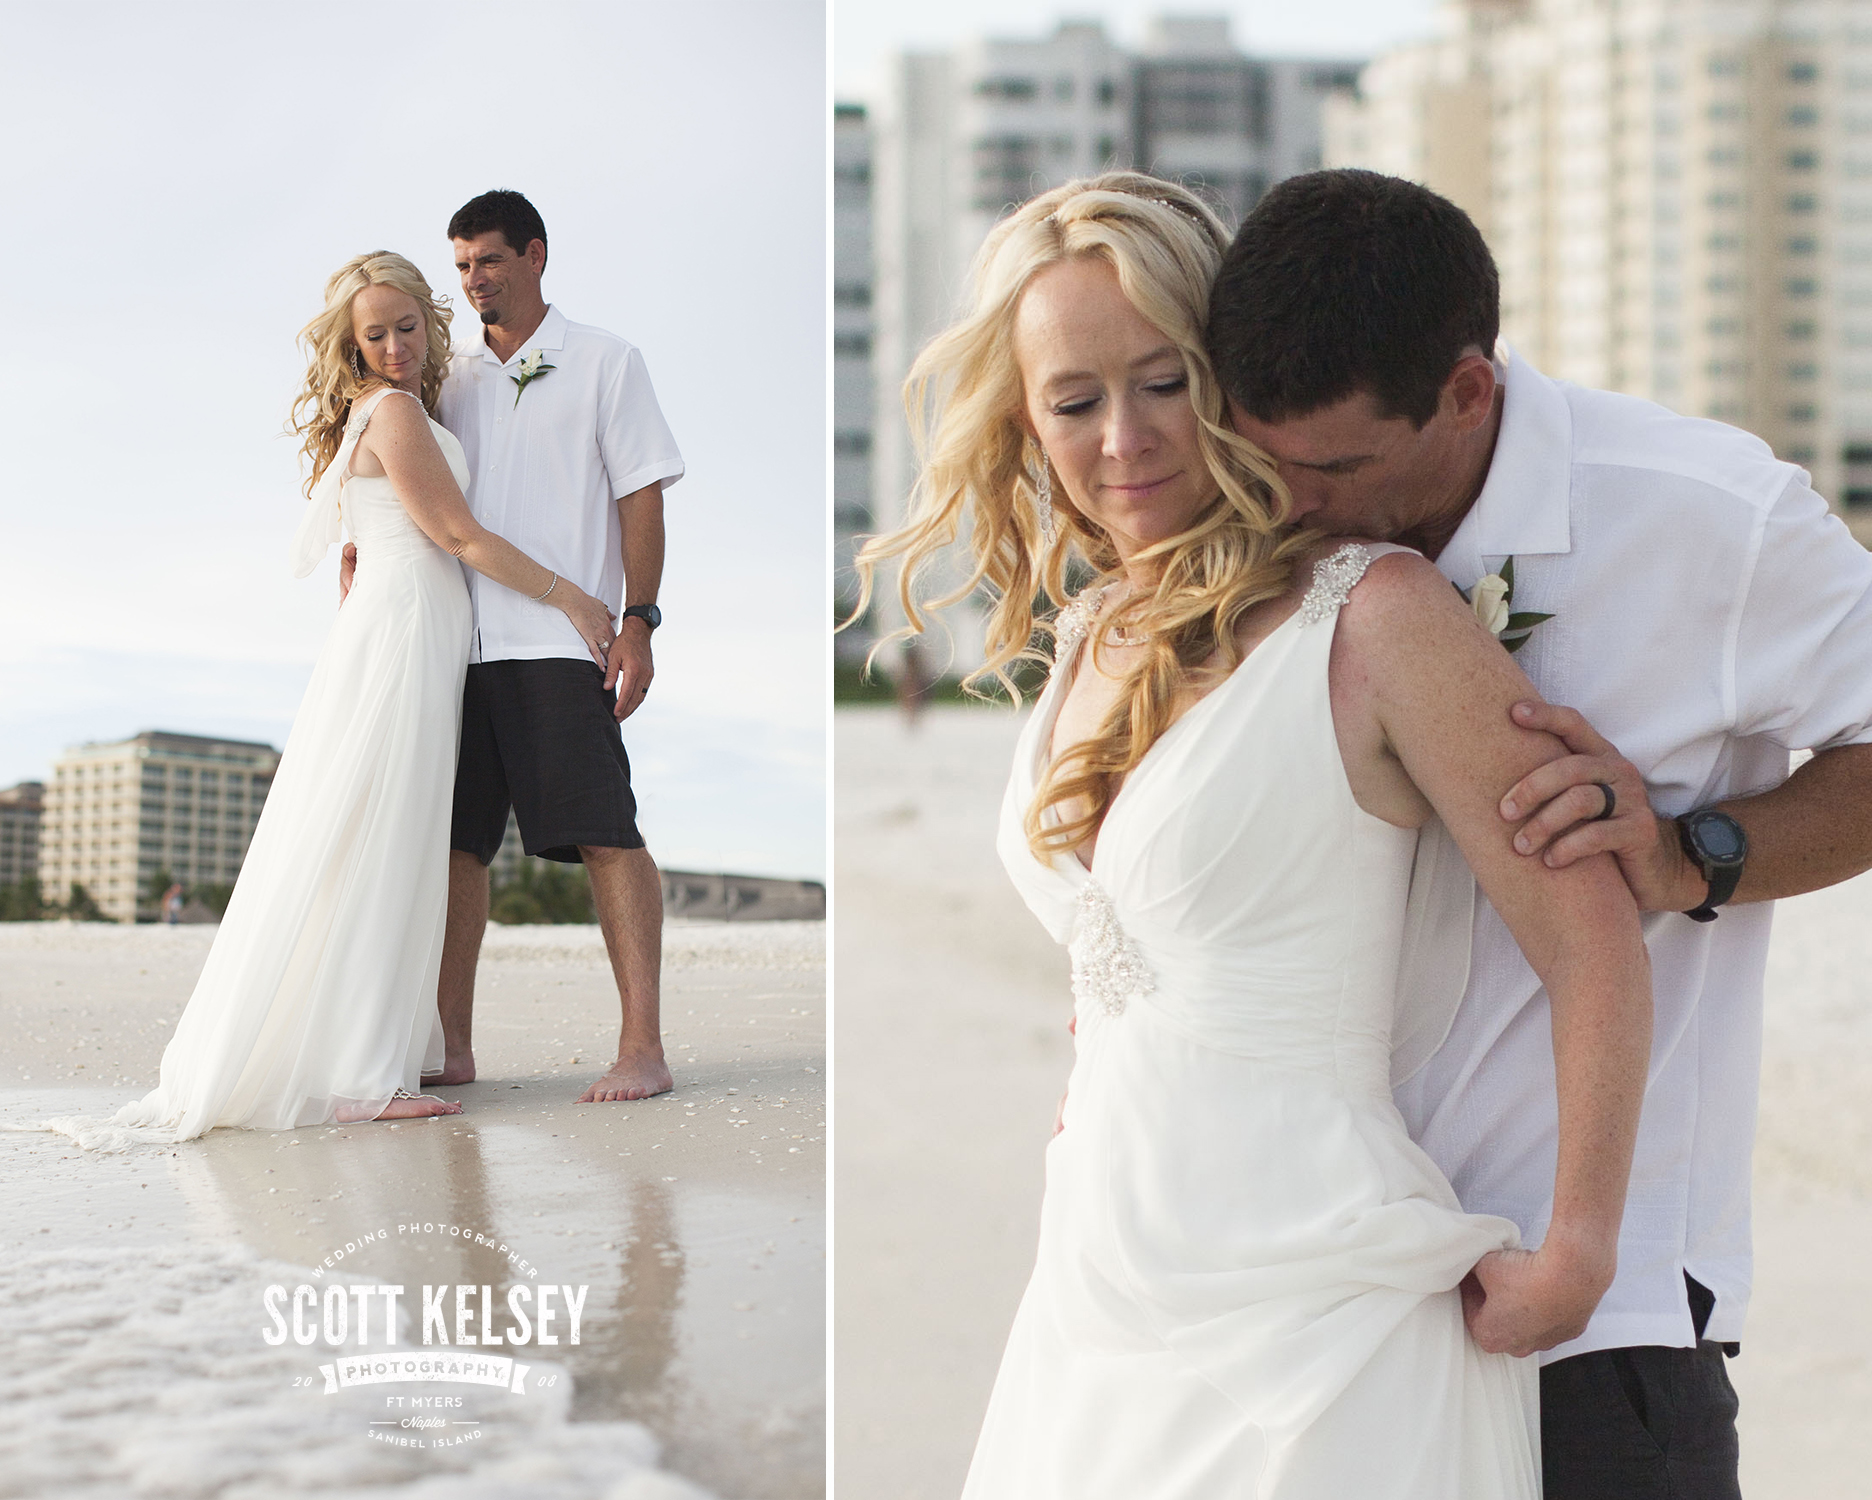 scott-kelsey-wedding-marco-island-0012